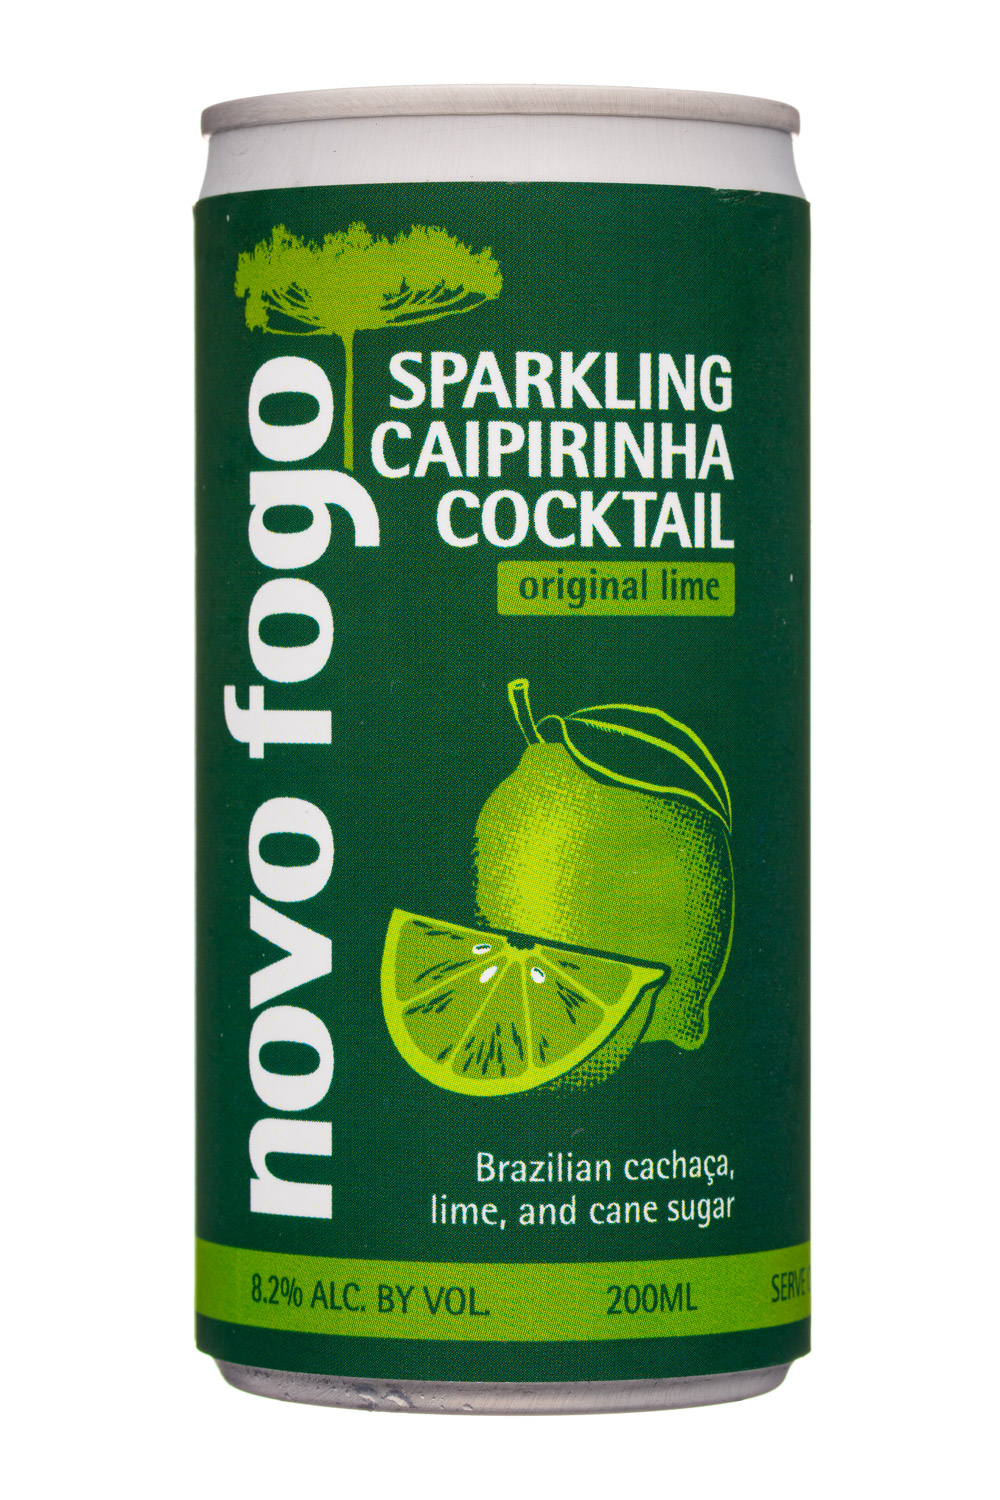 Sparkling Caipirinha Cocktail - Original Lime